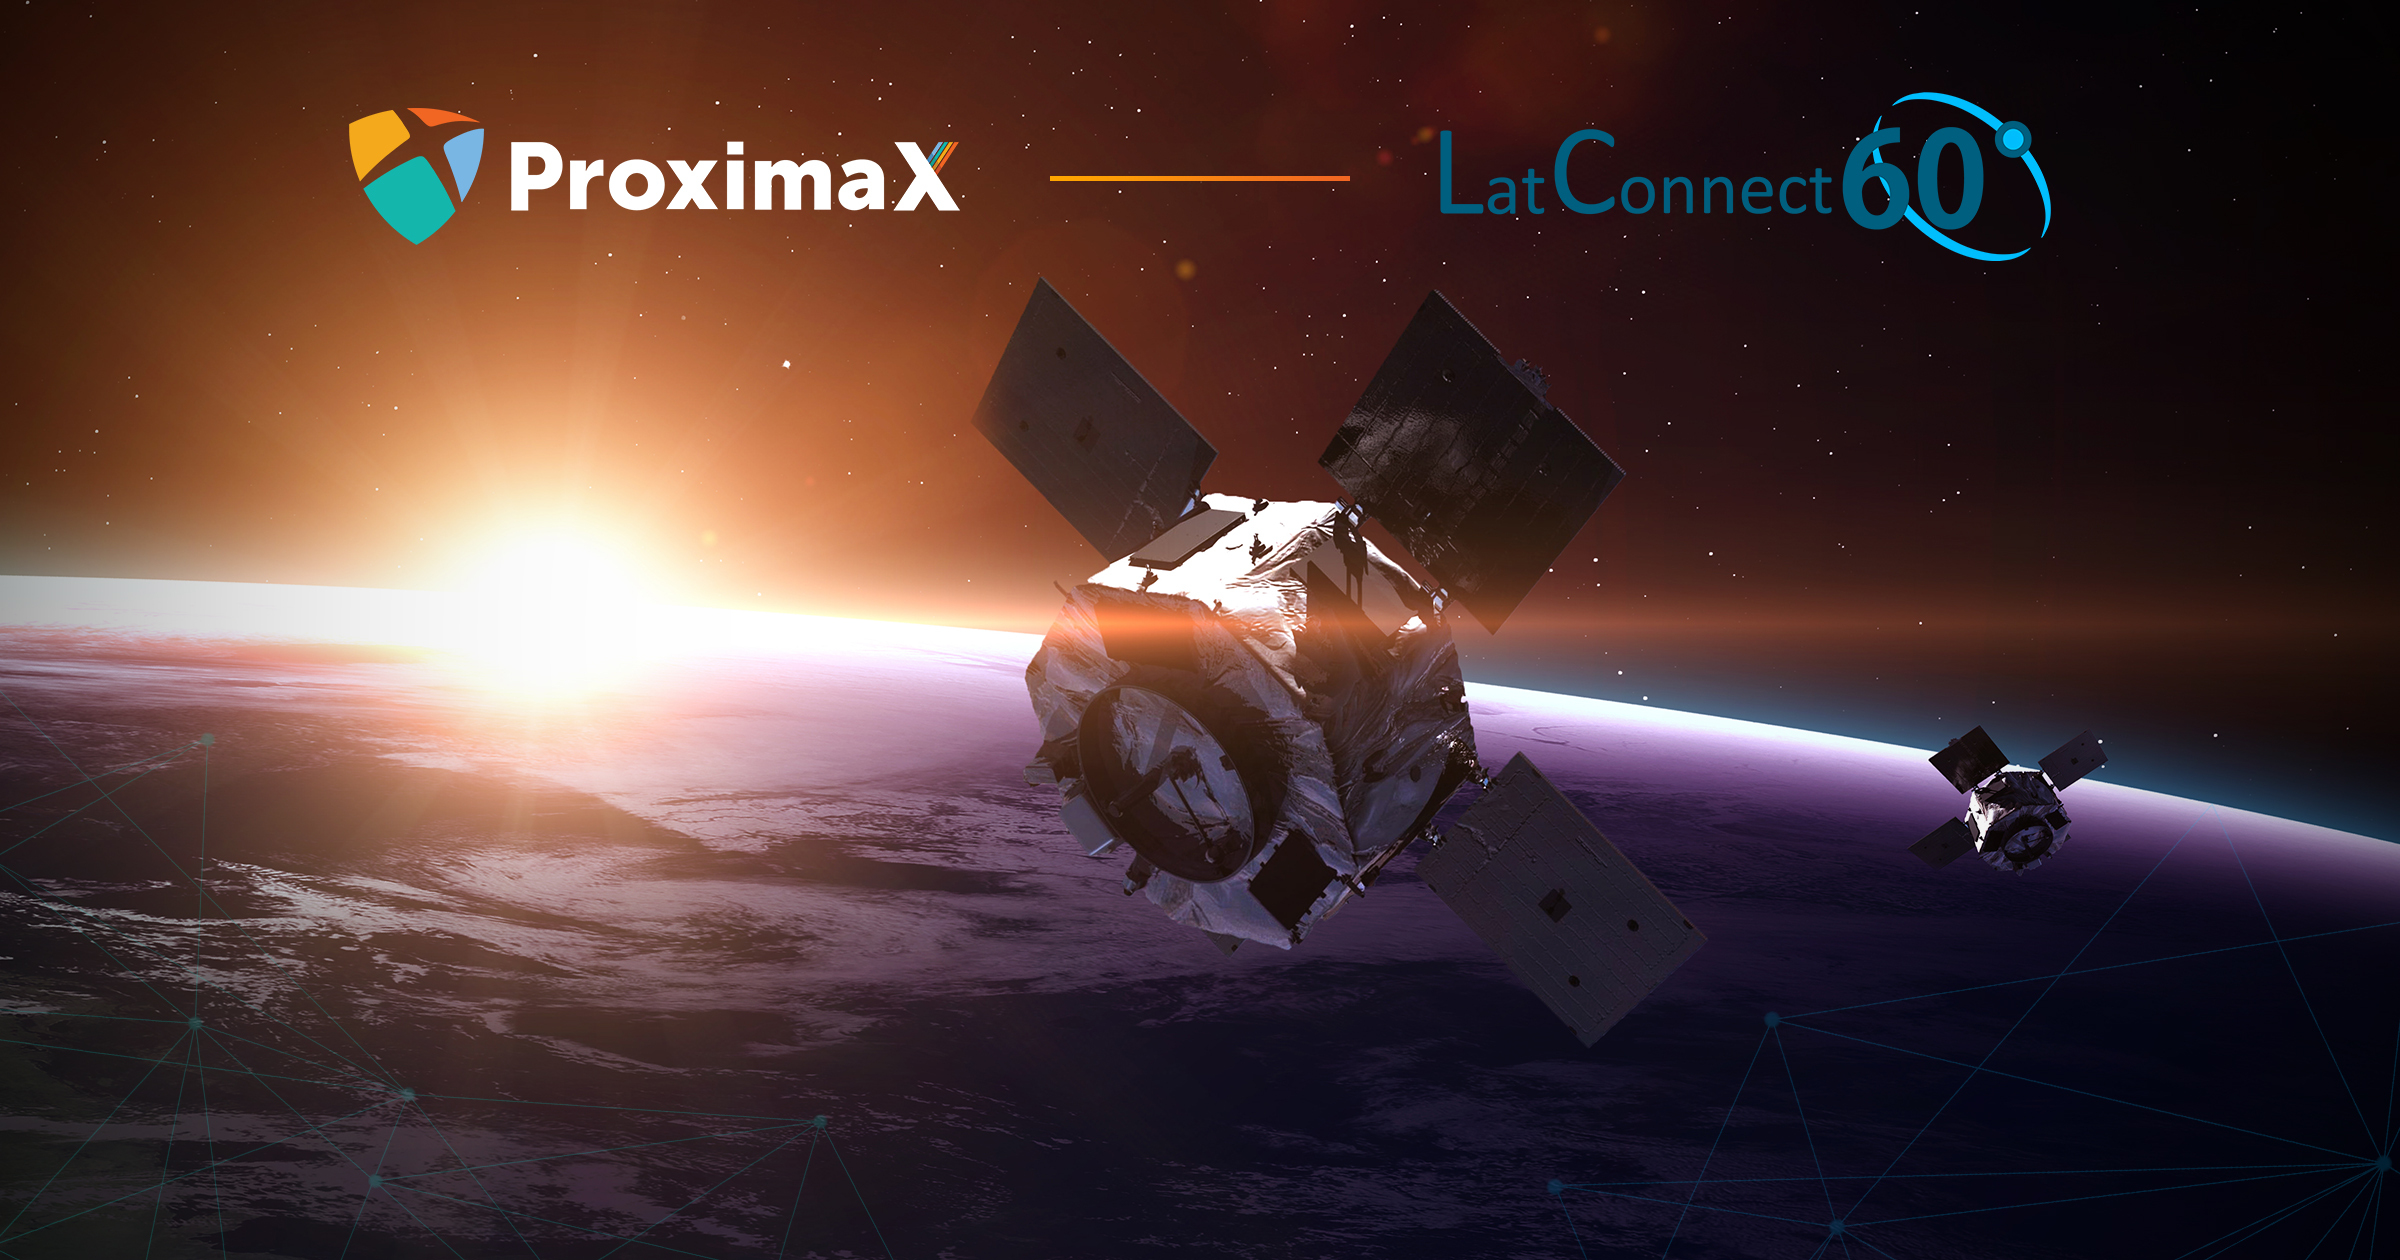 LATCONNECT 60 AND PROXIMAX TO ESTABLISH BLOCKCHAIN-BASED PARAMETRIC INSURANCE USE CASE